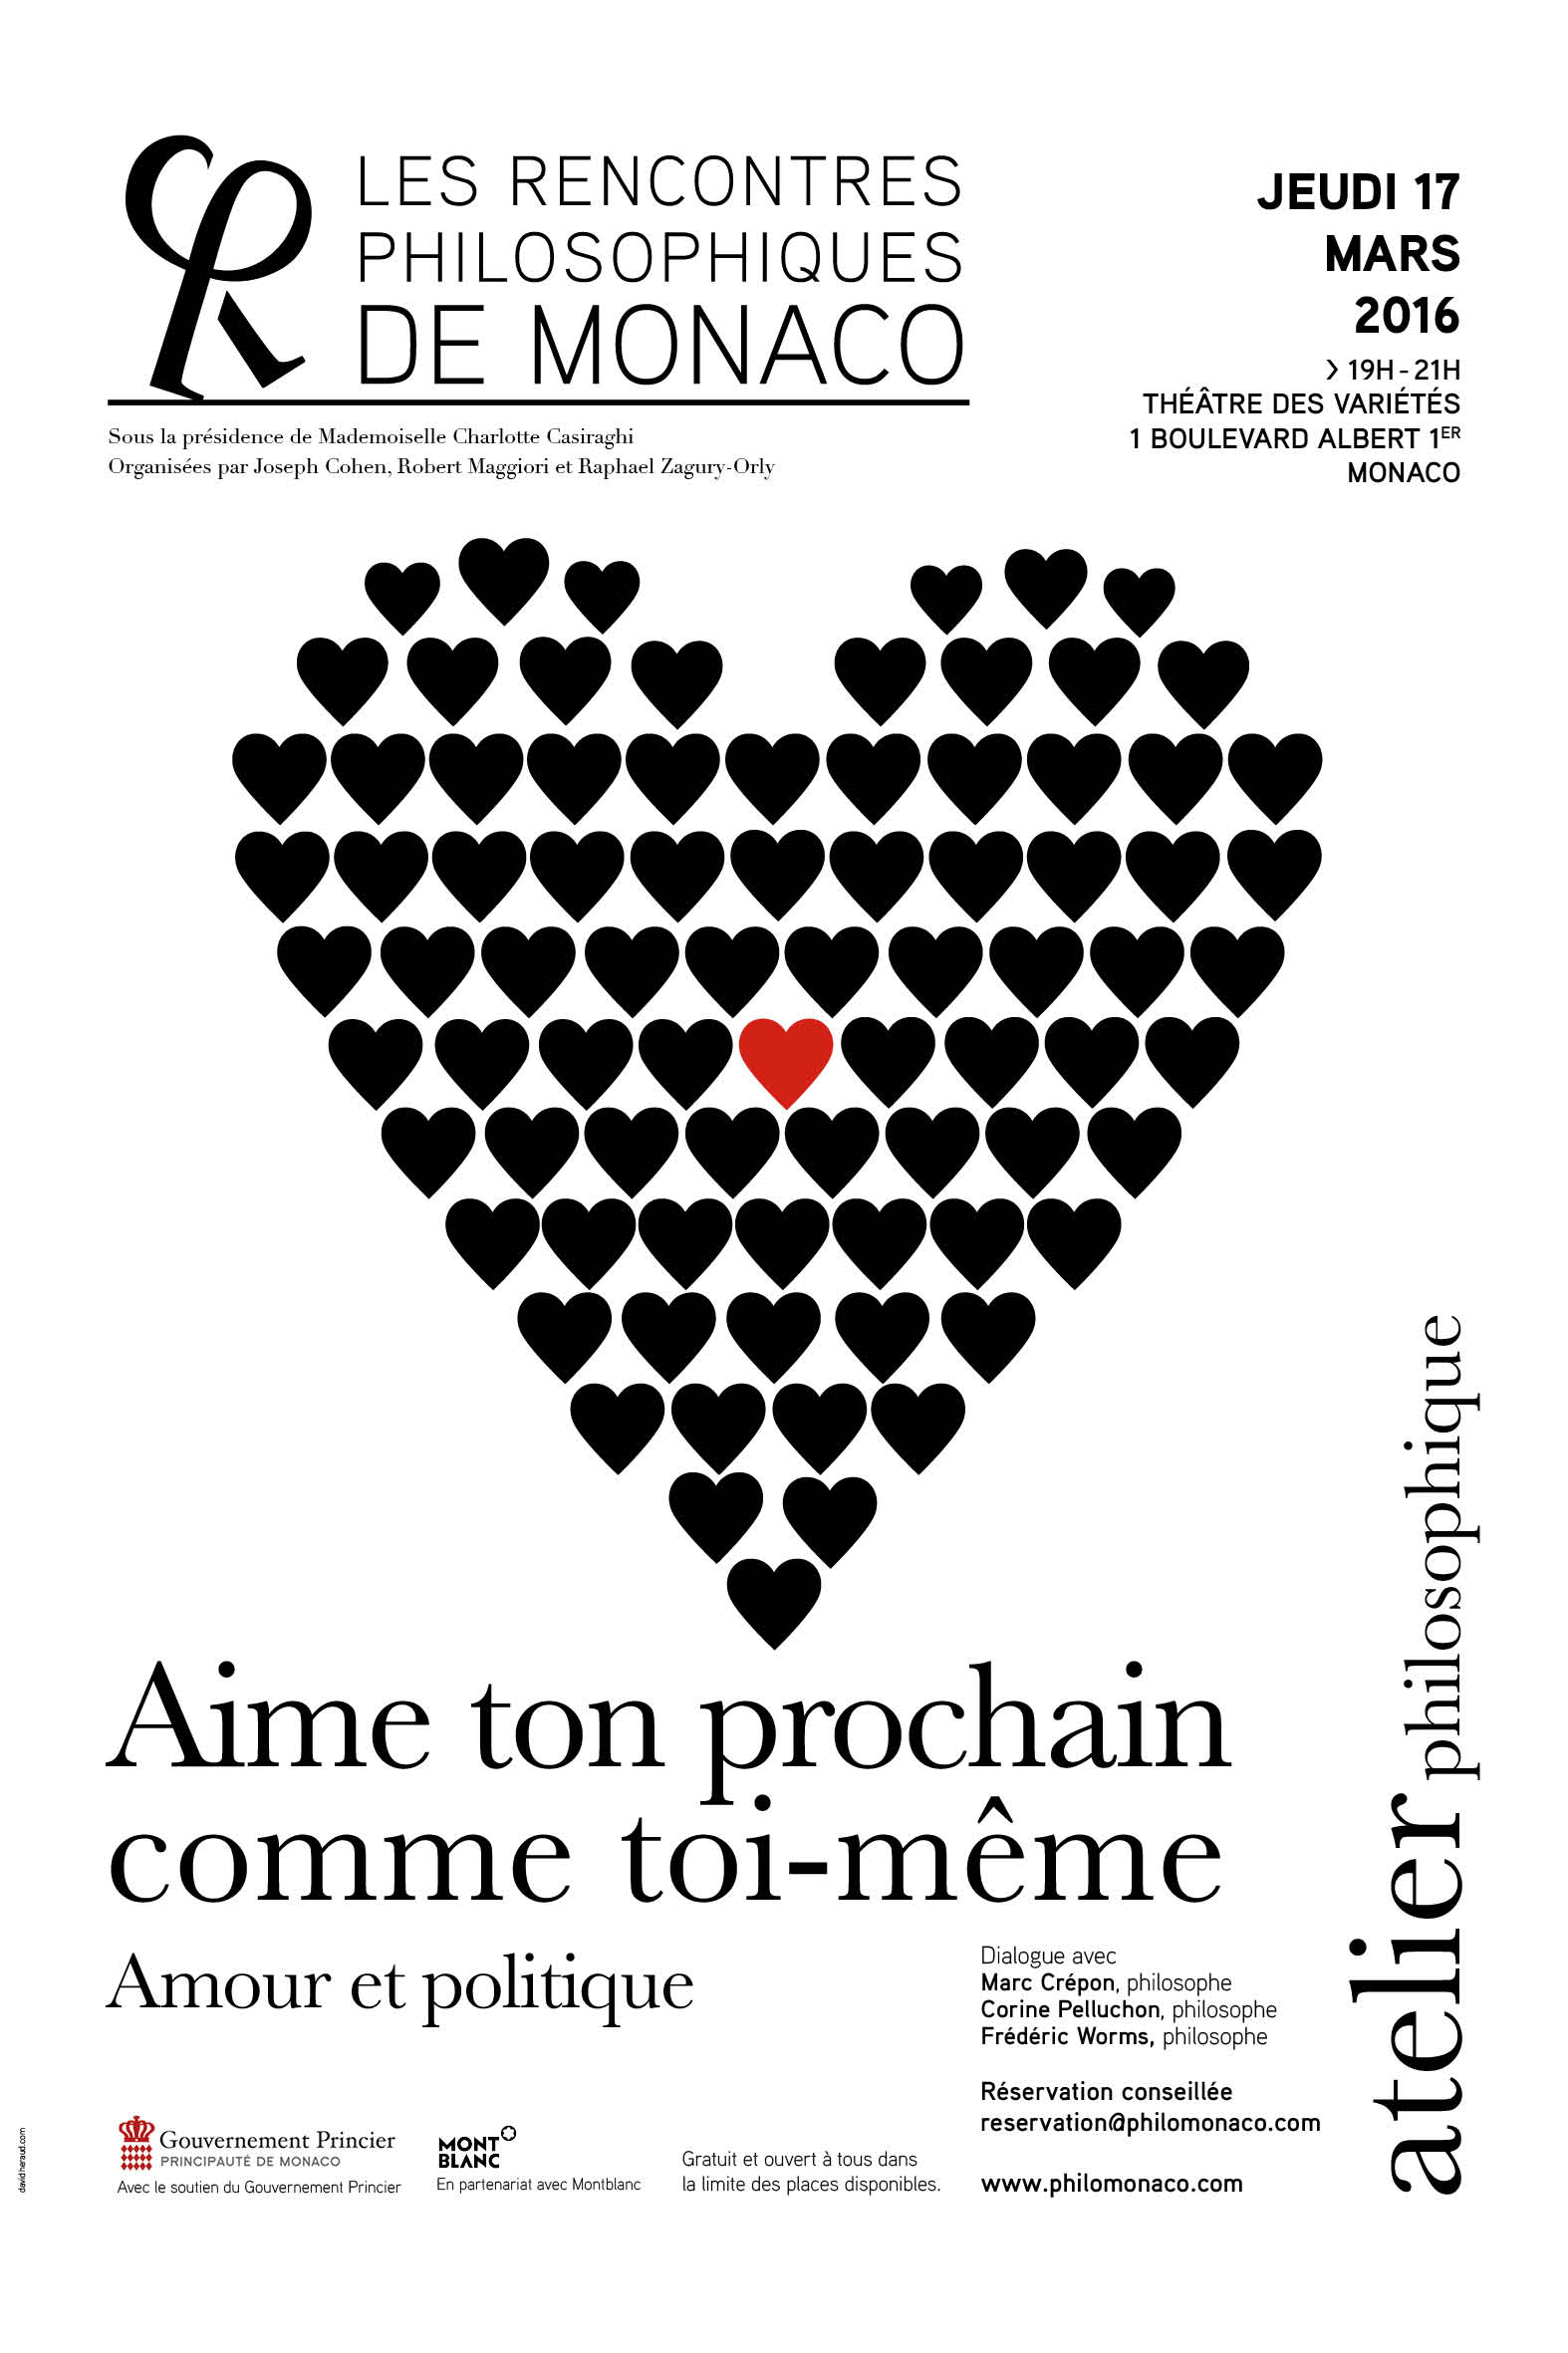 1201, 1201, Affiche, Affiche.jpg, http://philomonaco.com/wp-content/uploads/2017/02/Affiche.jpg, , 2, , , affiche, 2017-02-20 16:49:00, 2017-02-20 16:49:03, image/jpeg, image, http://philomonaco.com/wp-includes/images/media/default.png, 1574, 2362, Array